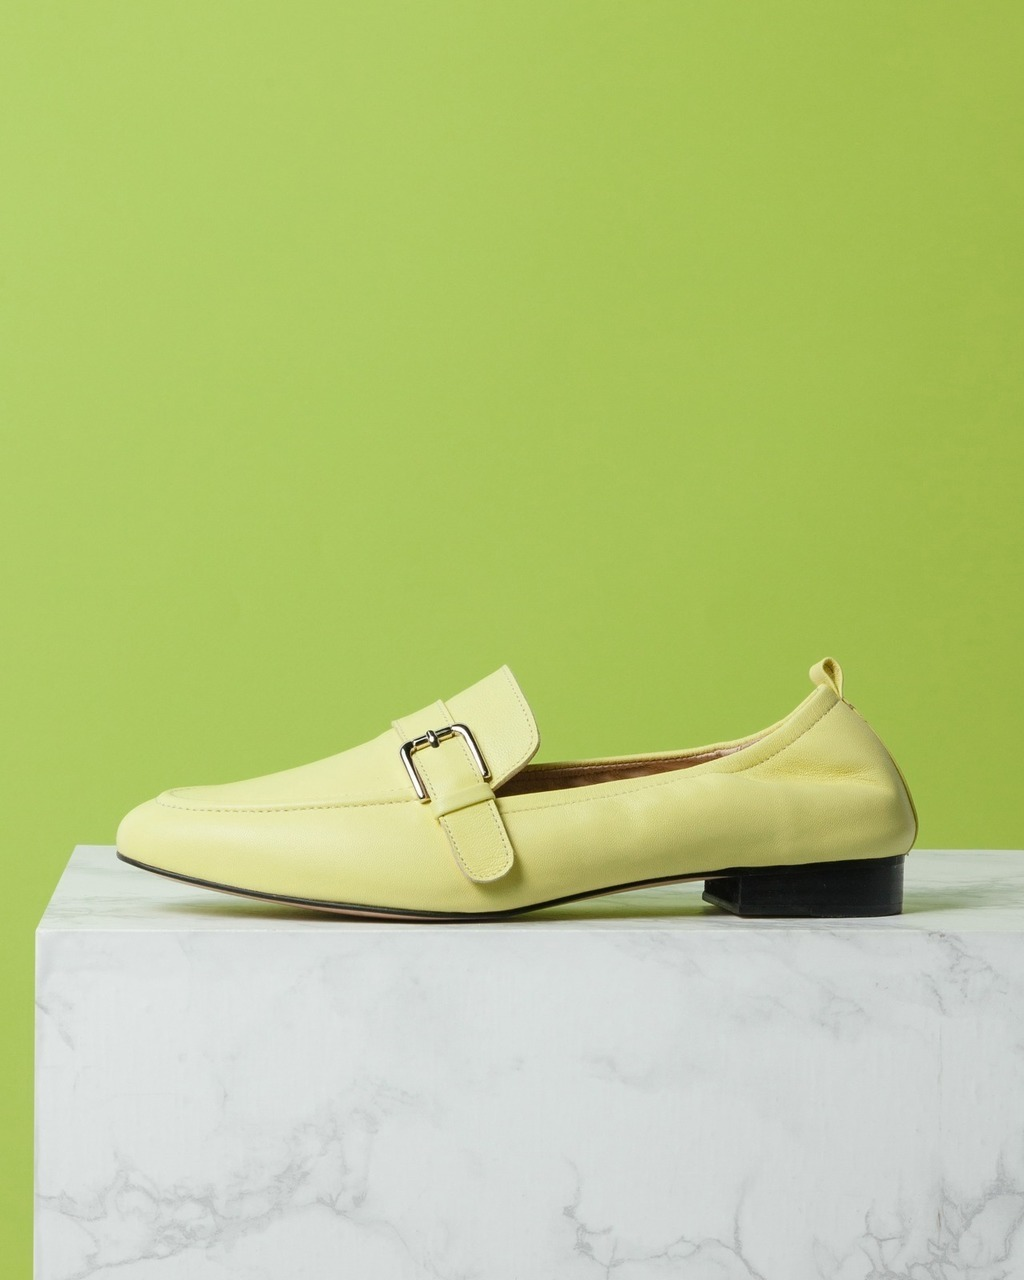 DORATORE Enel Lemon - Women's Shoes : Republic of Korea